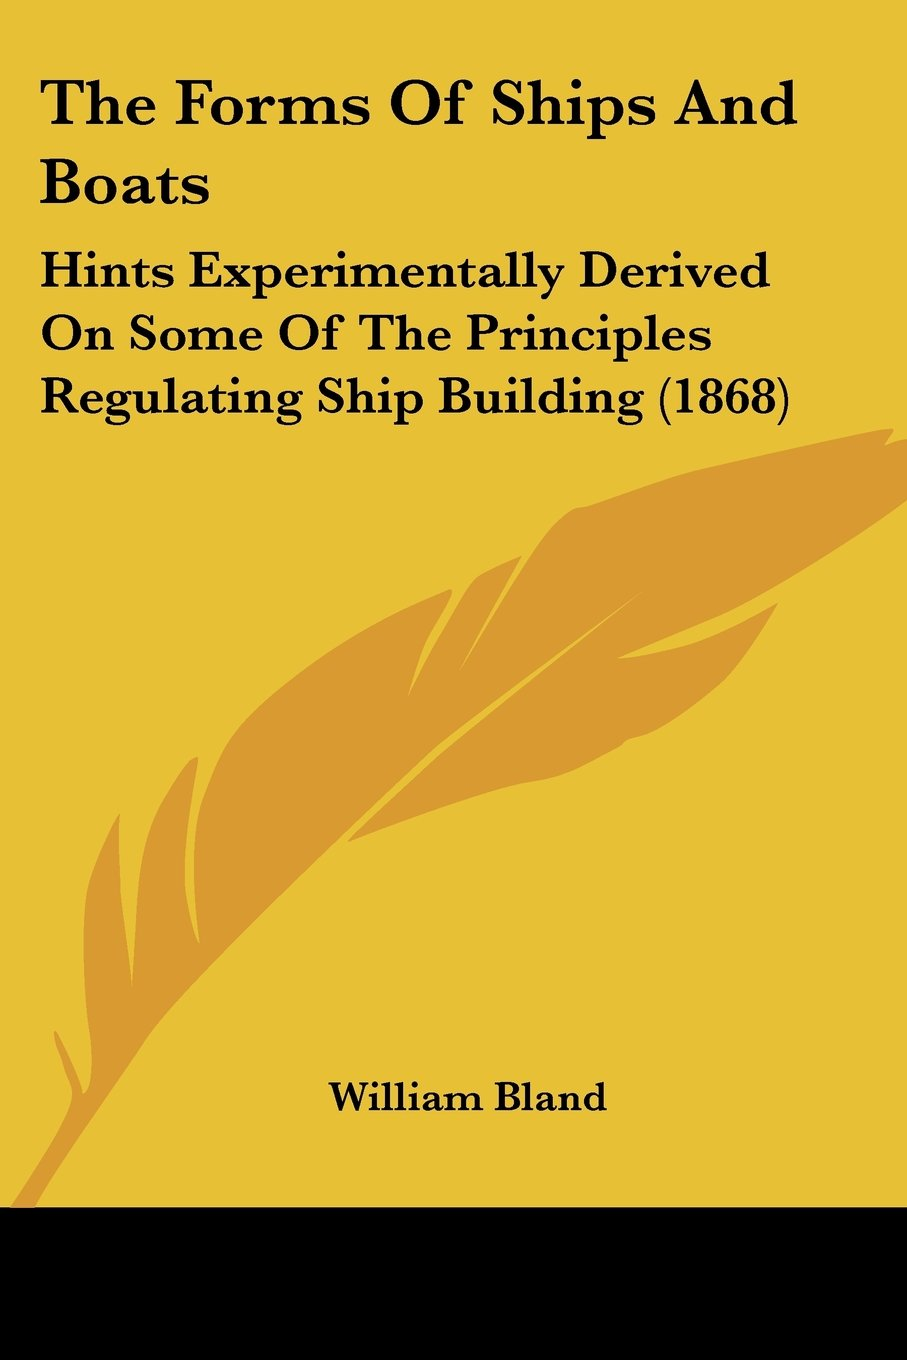 Read Online The Forms Of Ships And Boats: Hints Experimentally Derived On Some Of The Principles Regulating Ship Building (1868) ebook